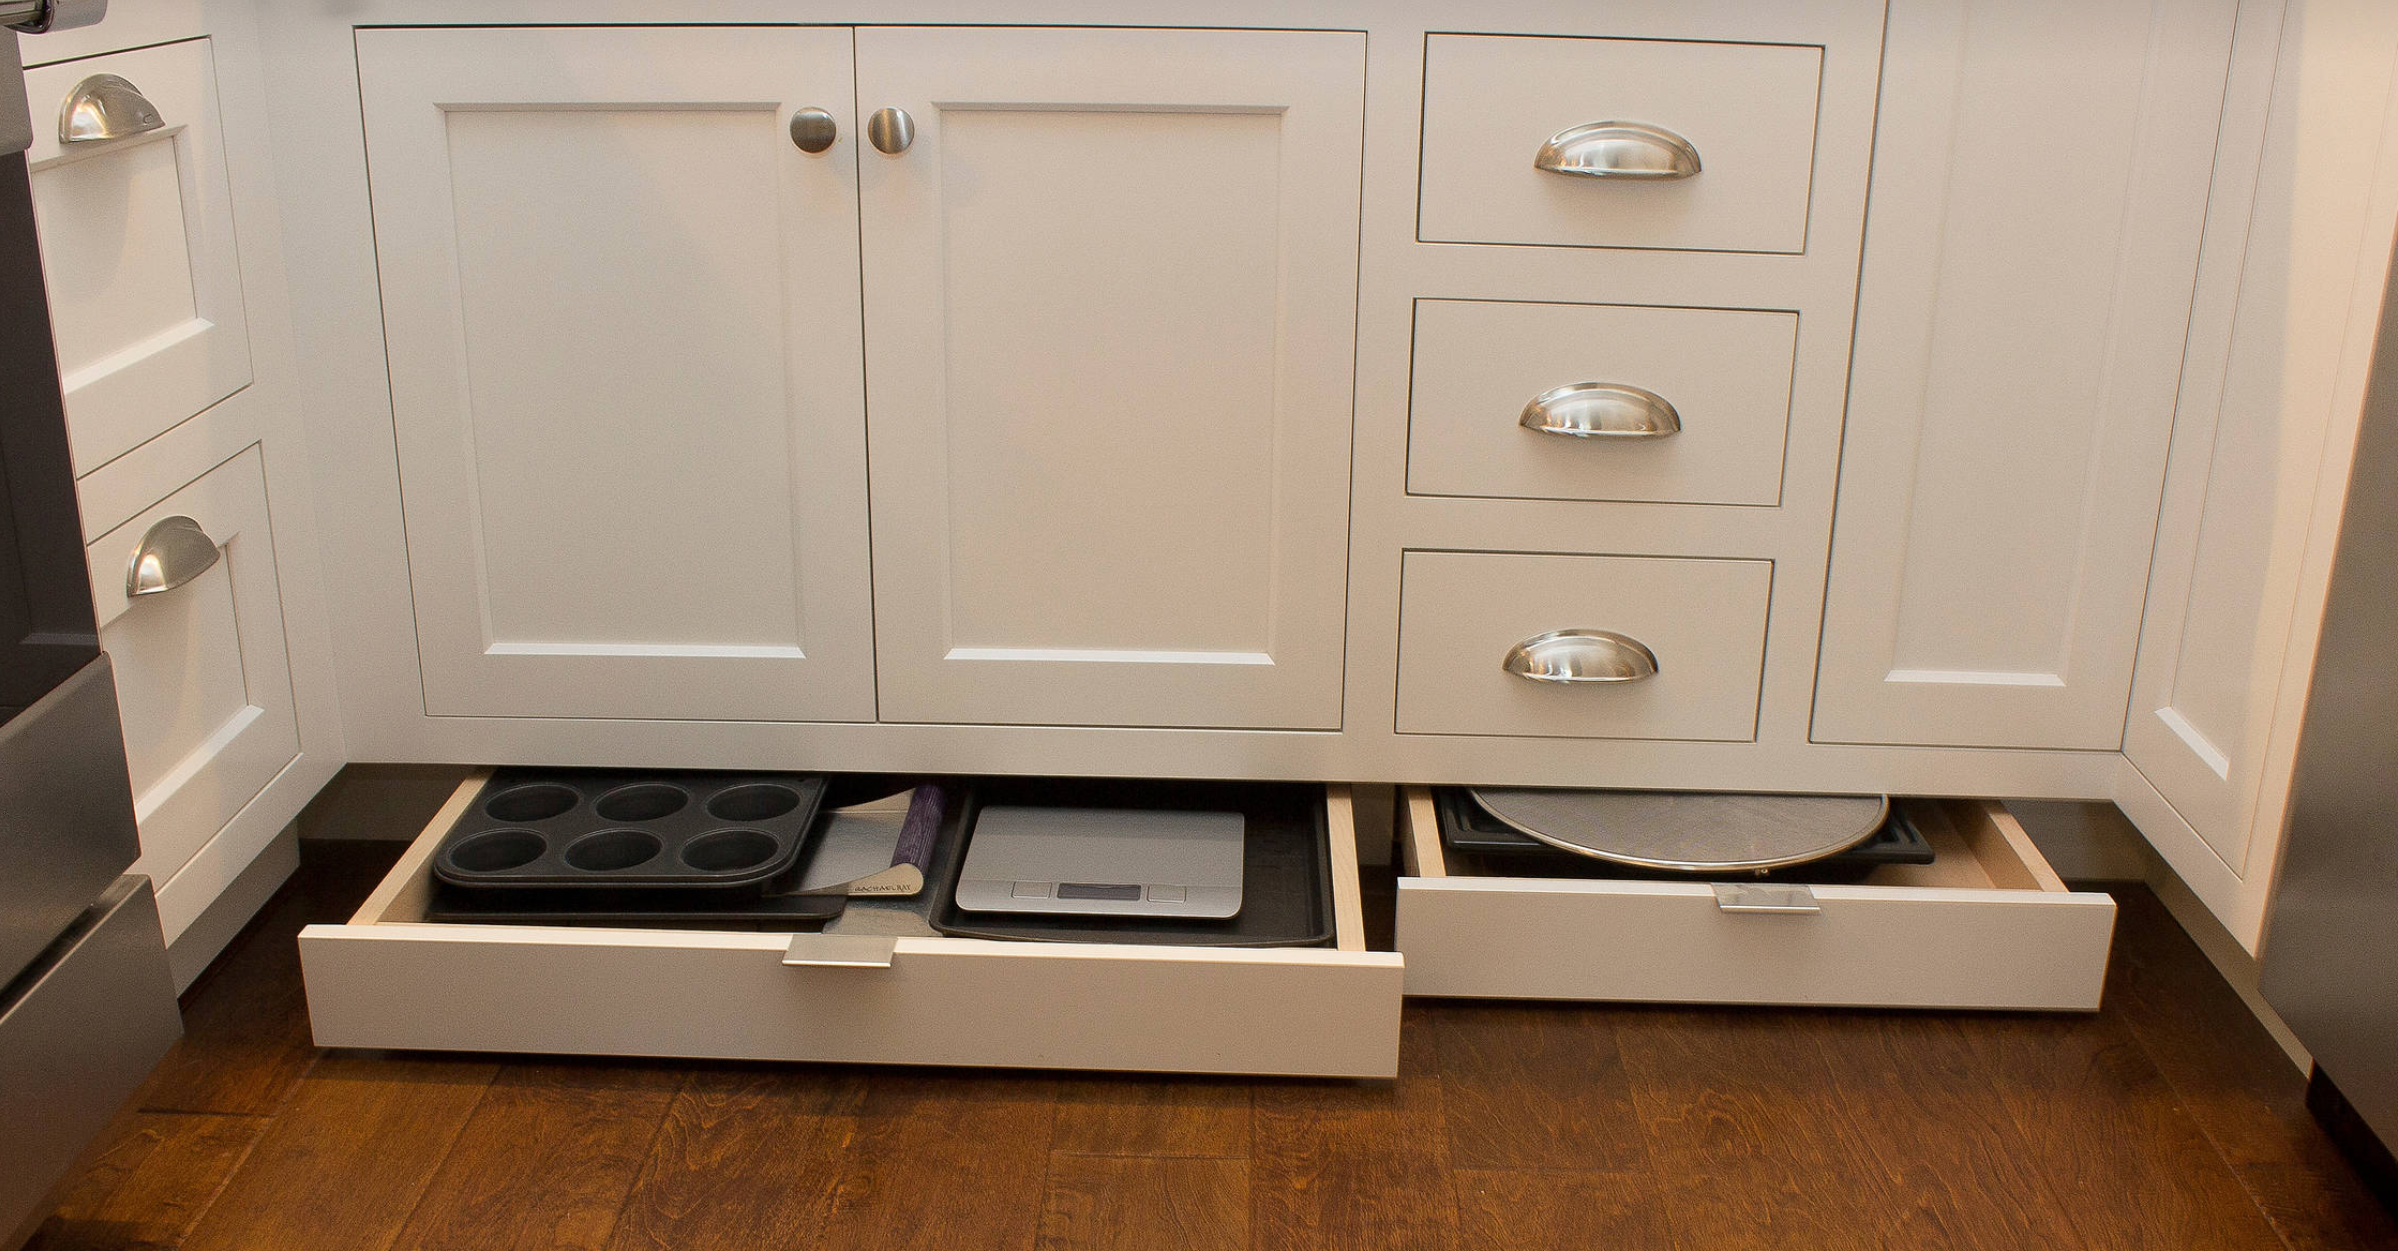 Toe Kick Under Cabinet Drawers In 2020 Under Cabinet Drawers Under Cabinet Cabinet Drawers